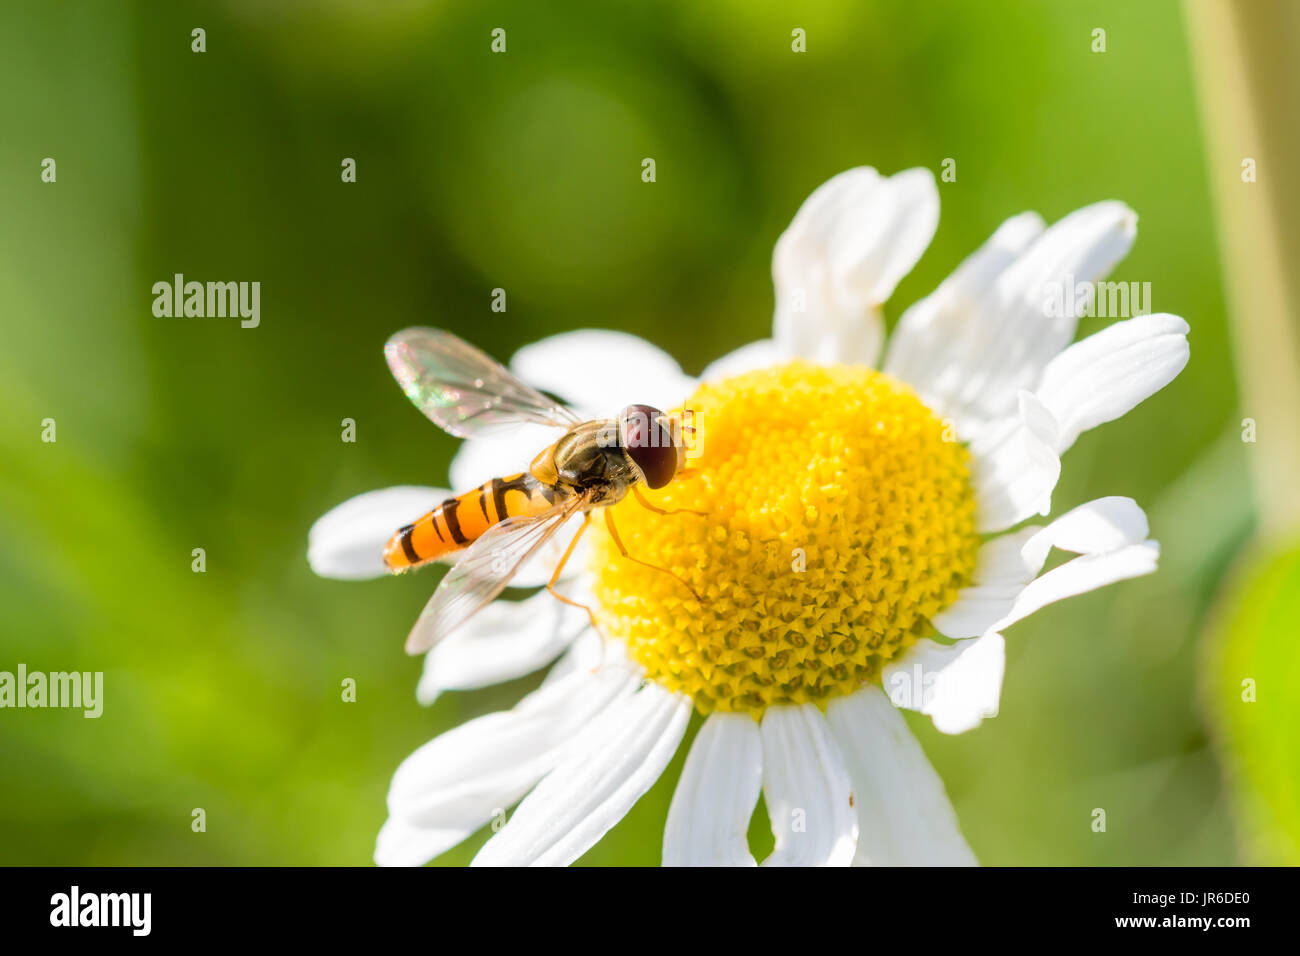 Small Wasp Just Landed On Small White Flower With Yellow Center